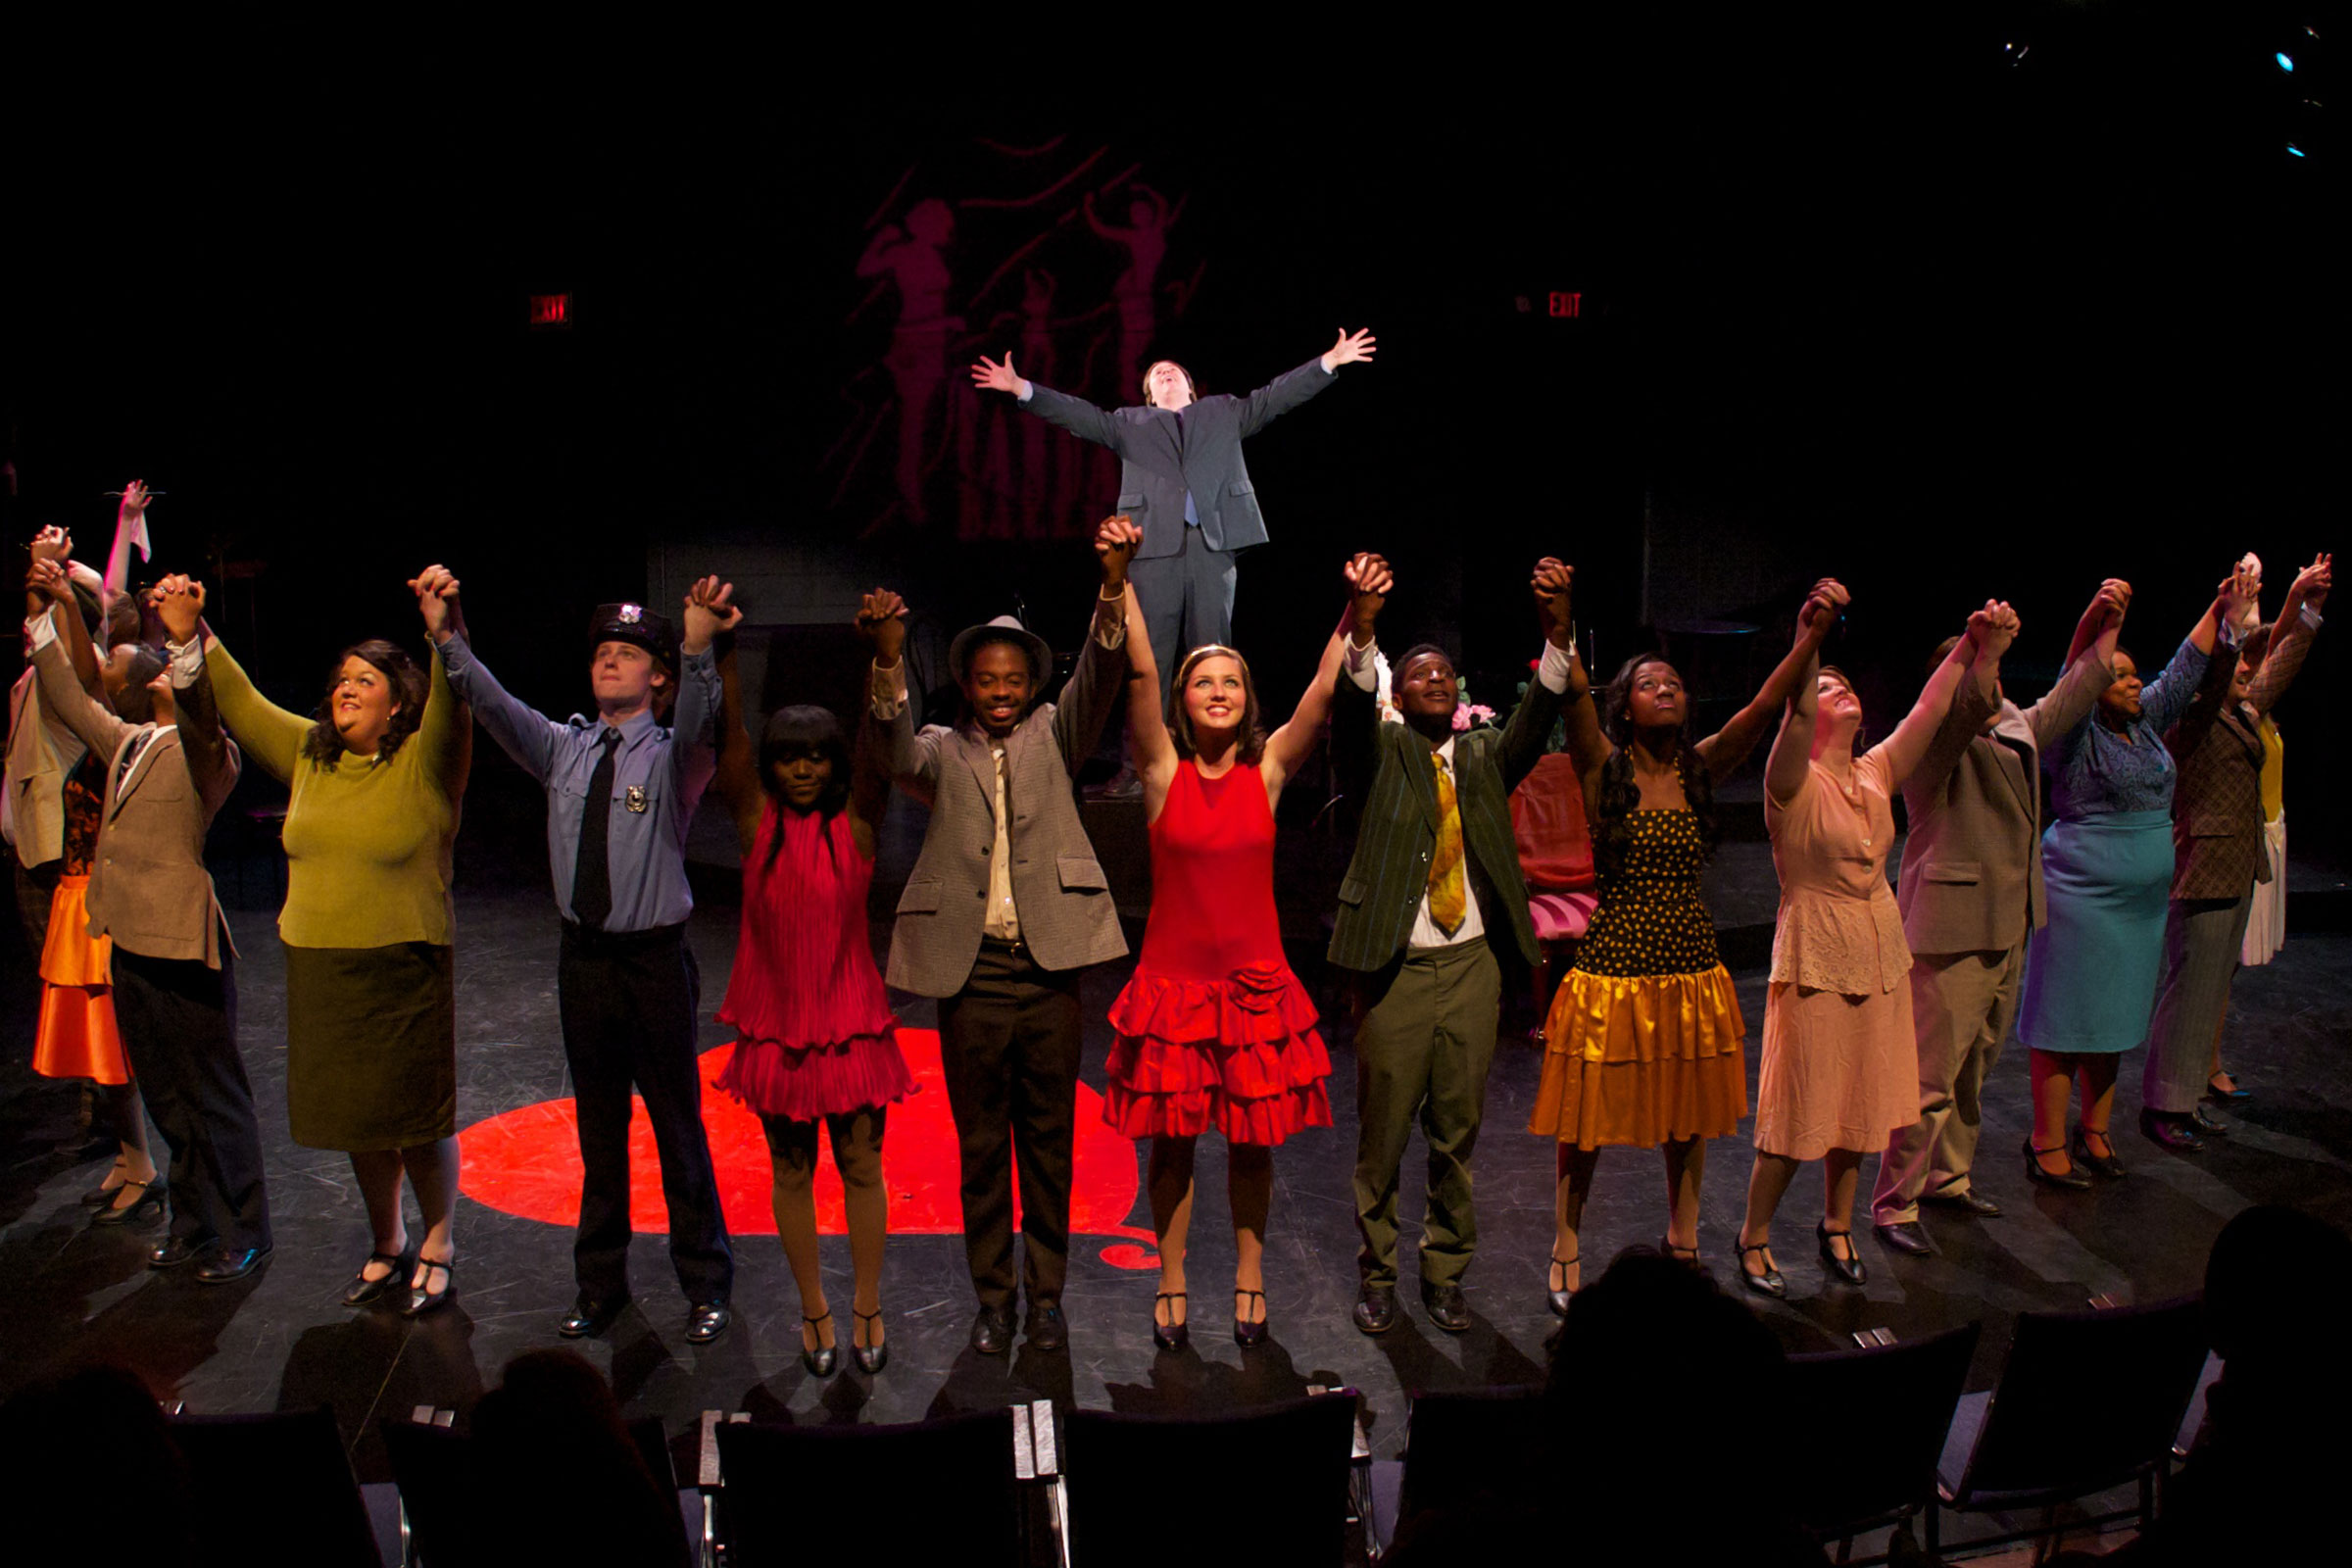 actors on stage arms raised